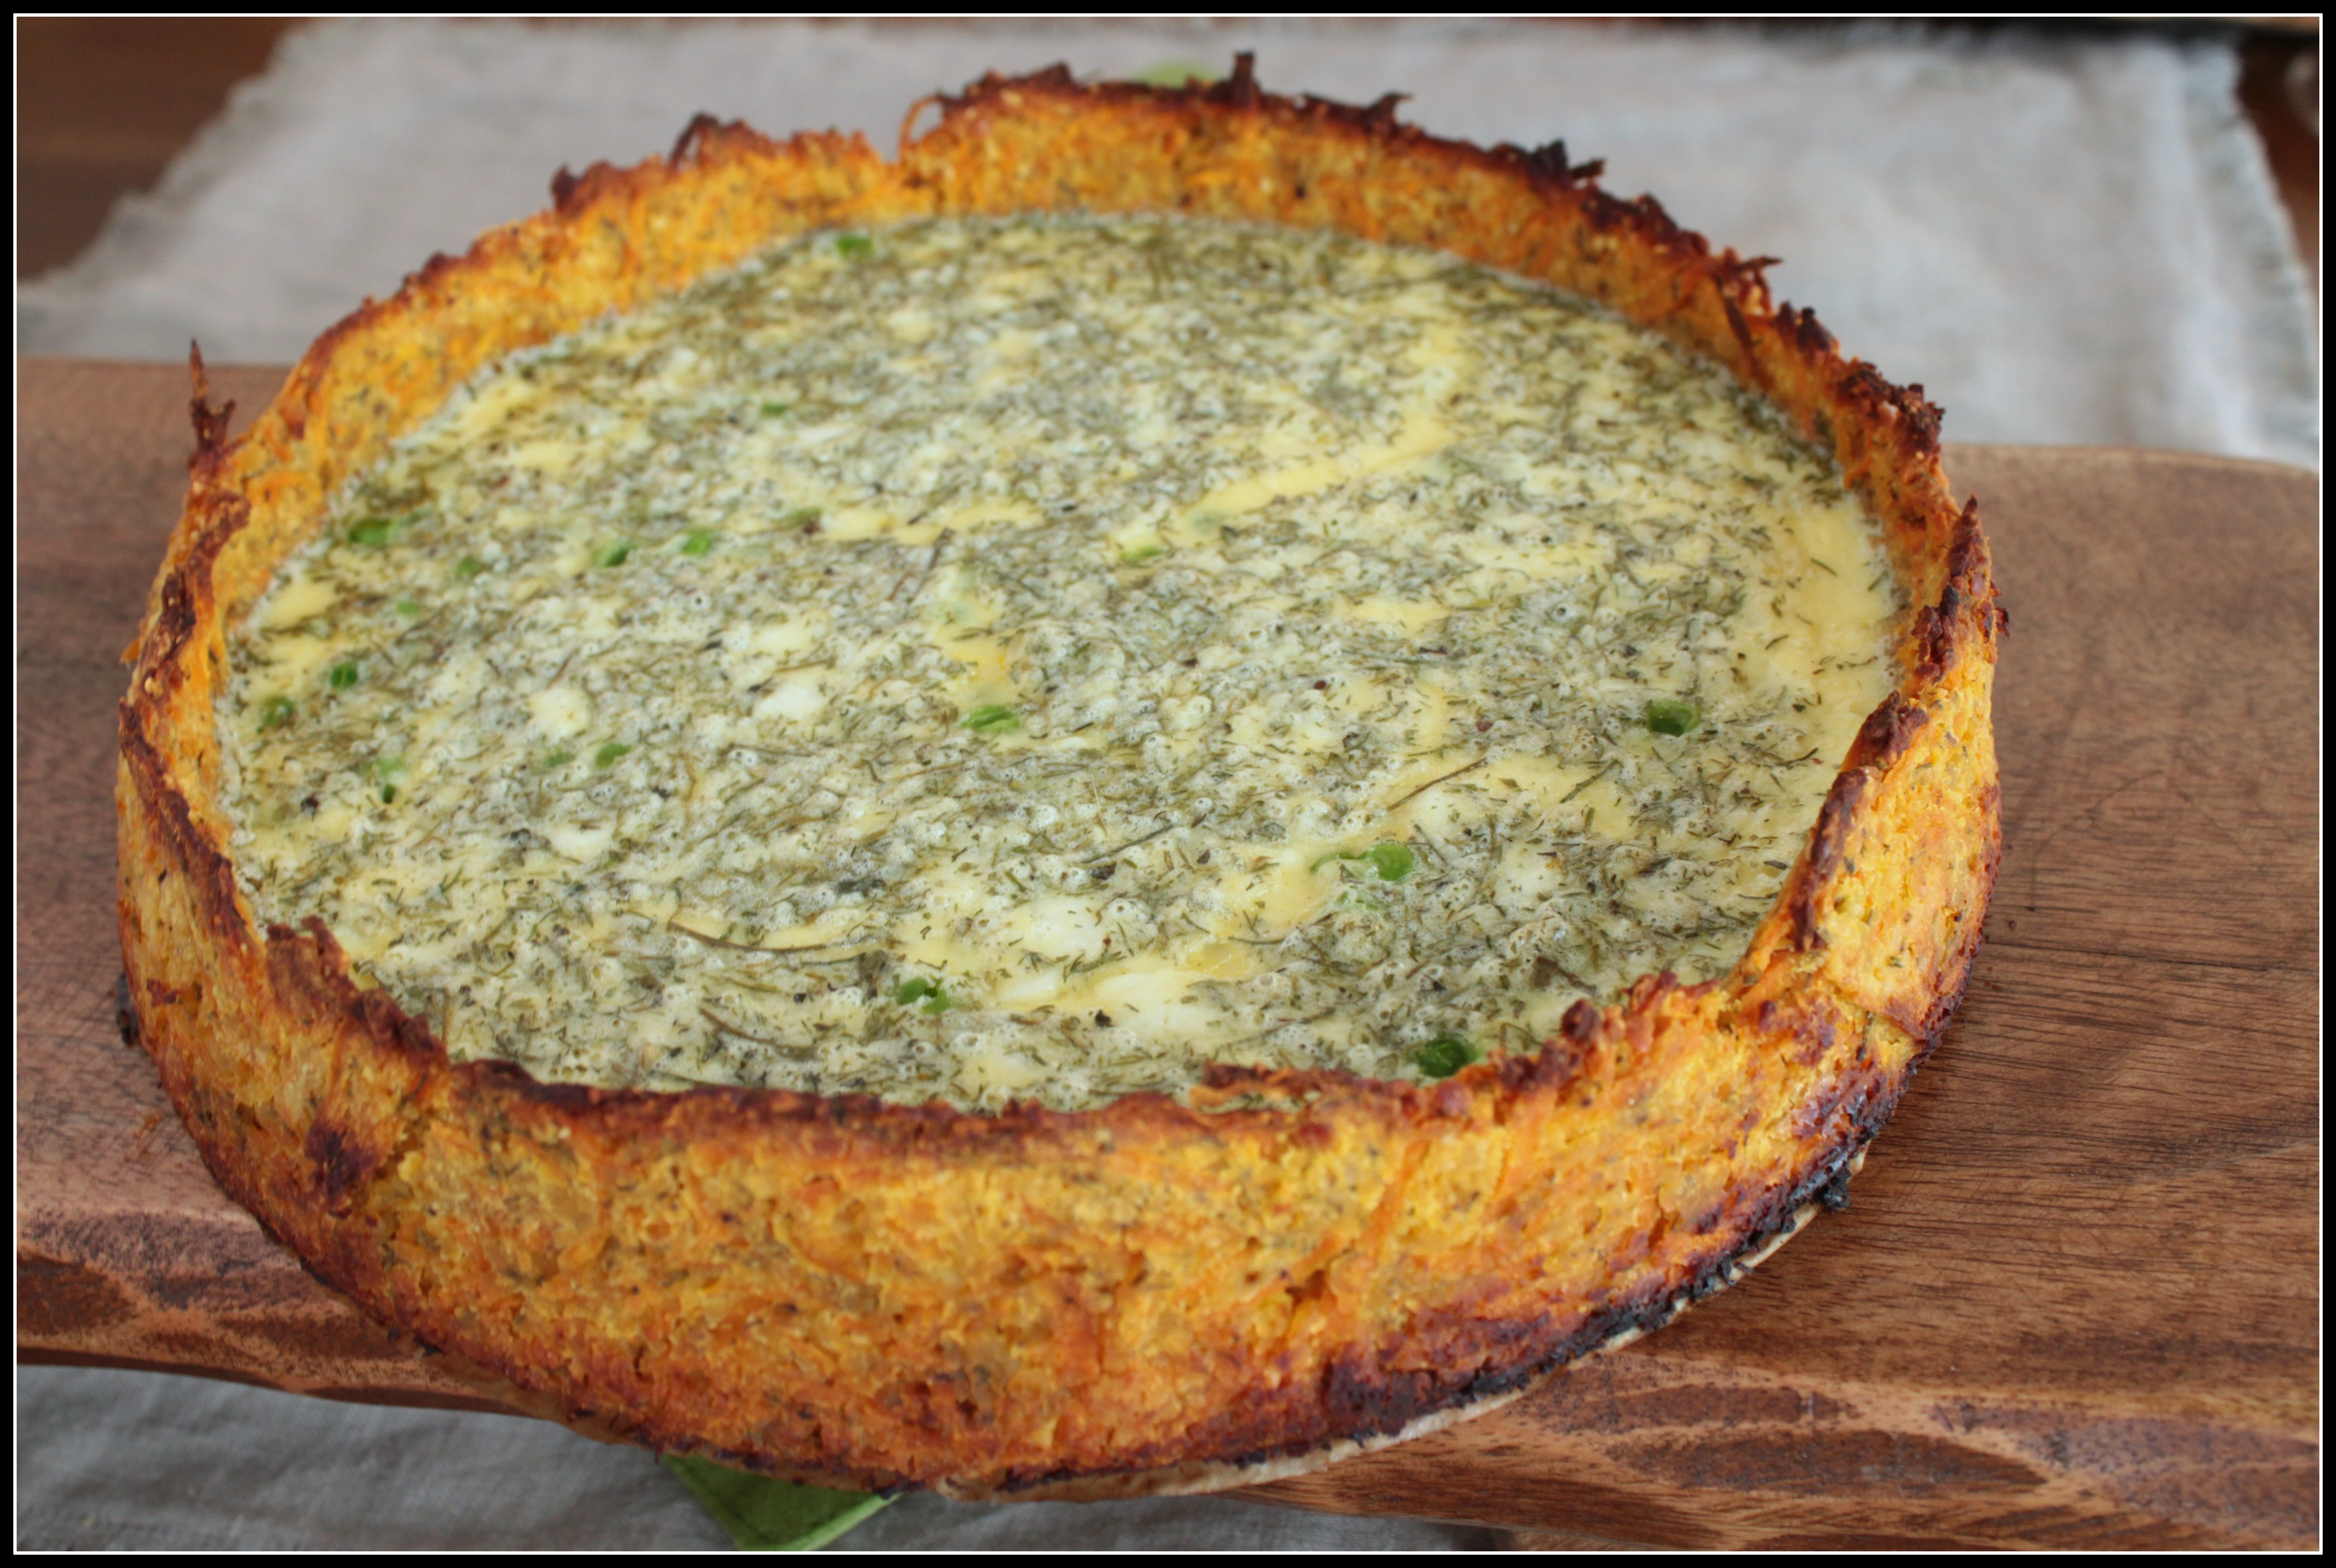 ... quiche crustless quiche tofu quiche quiche bites lentil quiche recipe